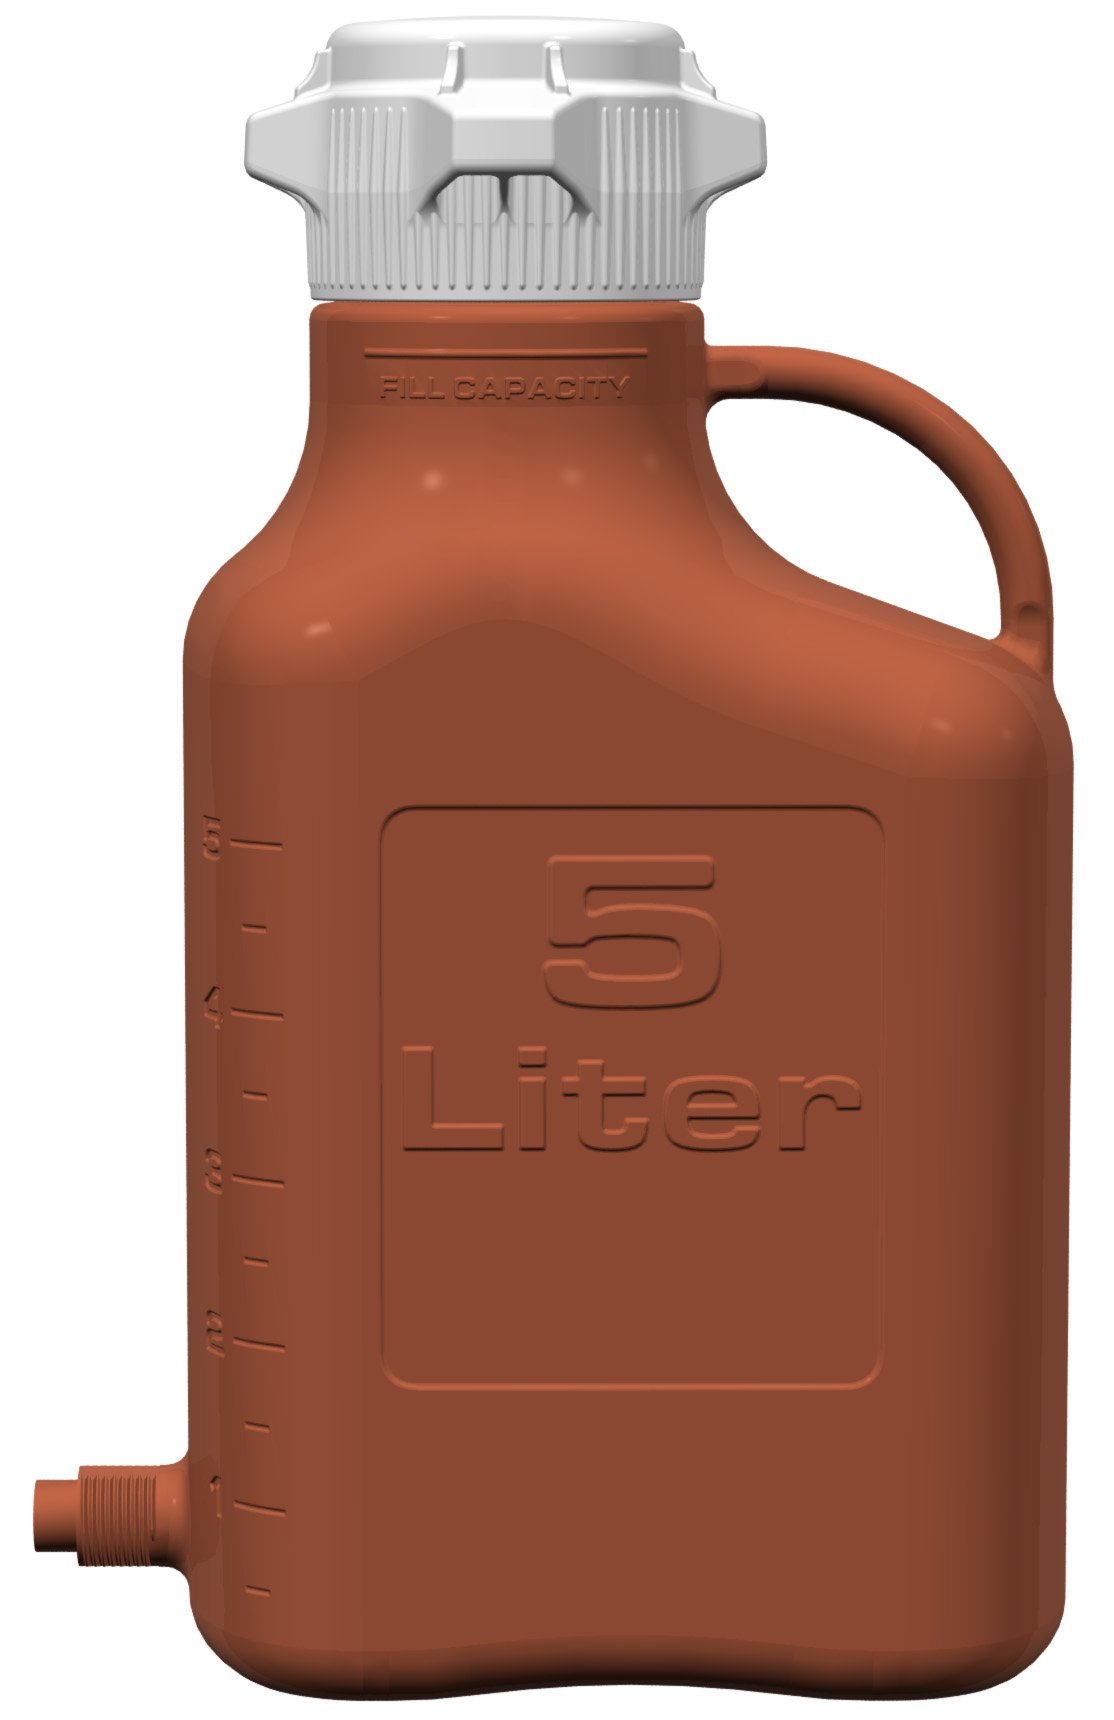 EZgrip 5L (1 Gal) Light Blocking Amber HDPE Space Saving Carboy with Leakproof Spigot, 83mm (83B) VersaCap and 6.9L Max Capacity